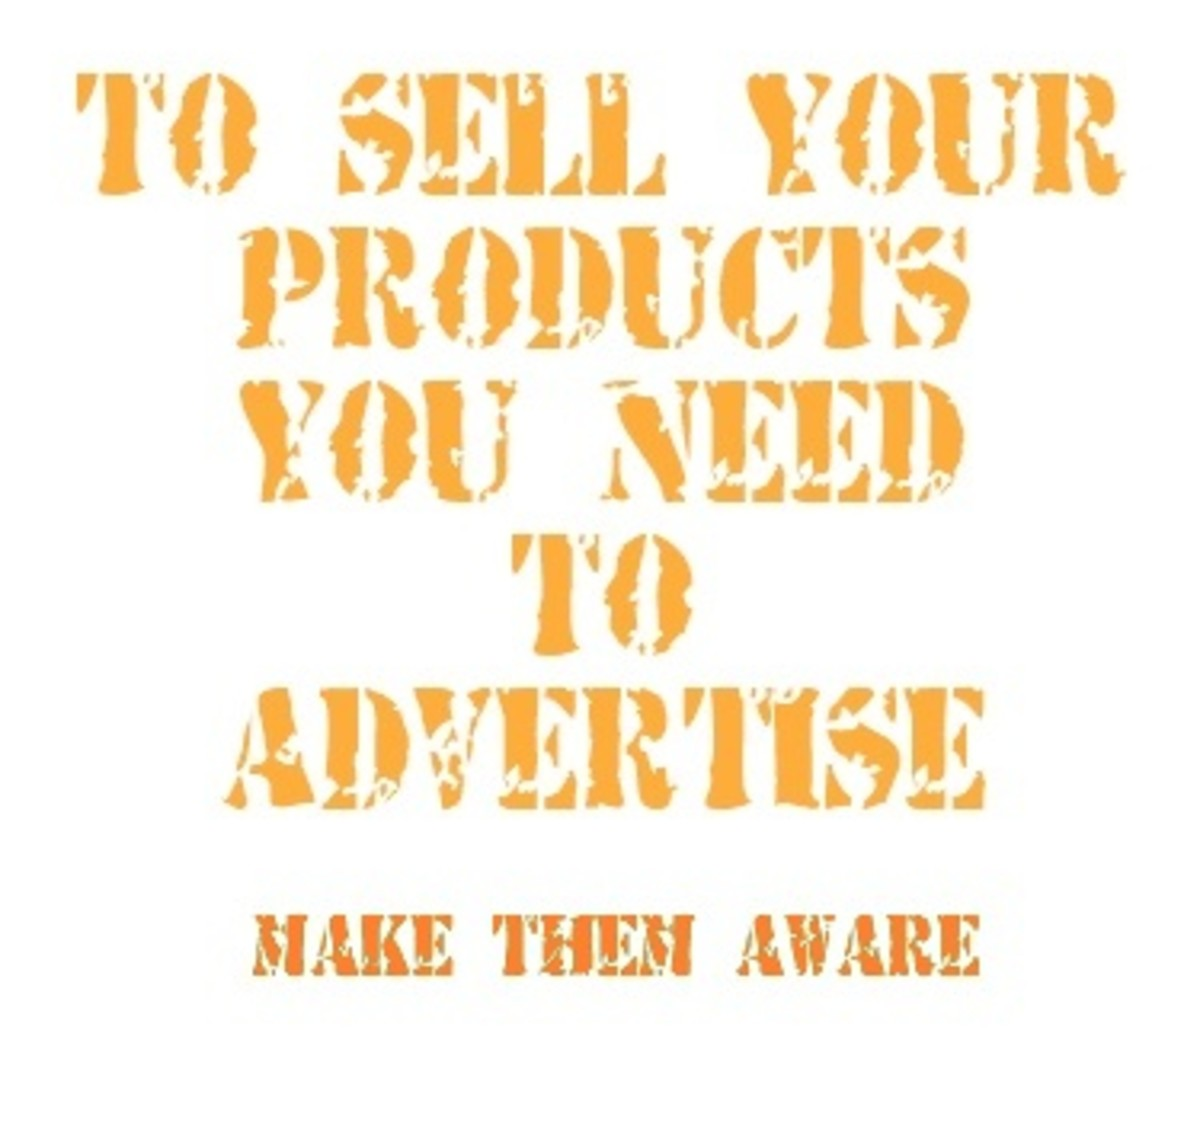 Advertize Your Business